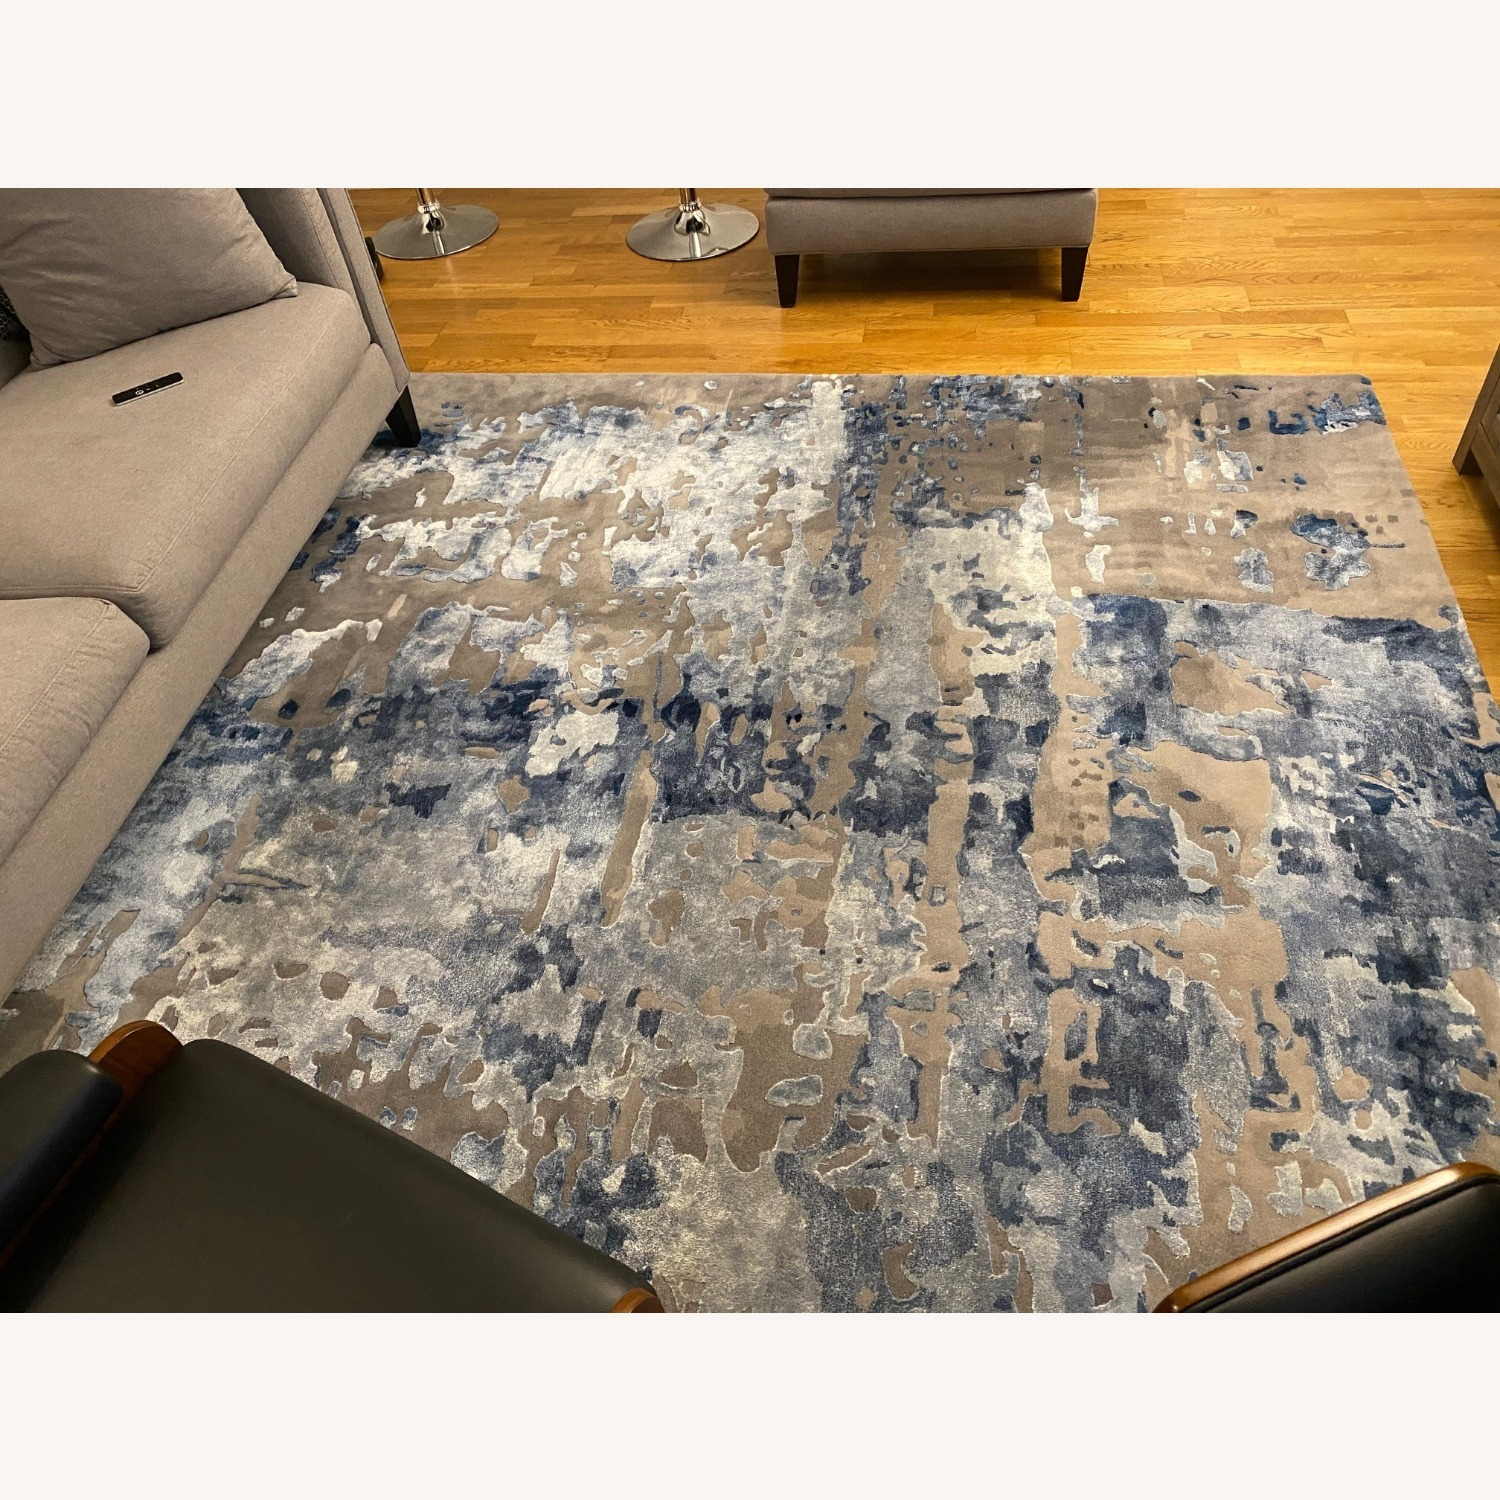 Nourison Blue Gray Abstract Area Rug 8ft x 10ft - image-2